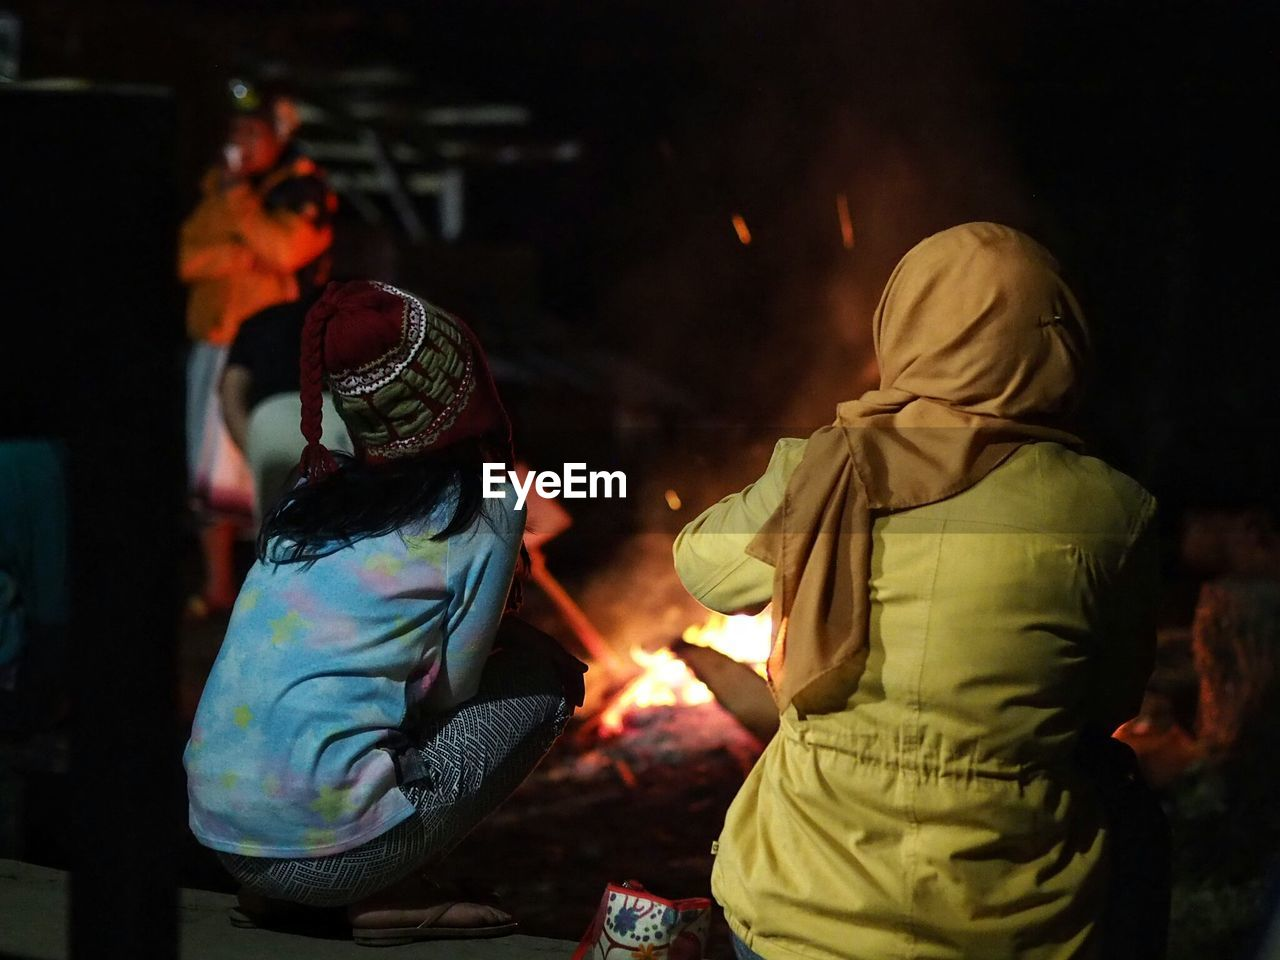 real people, night, burning, traditional clothing, rear view, men, flame, heat - temperature, two people, women, togetherness, lifestyles, illuminated, outdoors, childhood, warm clothing, adult, people